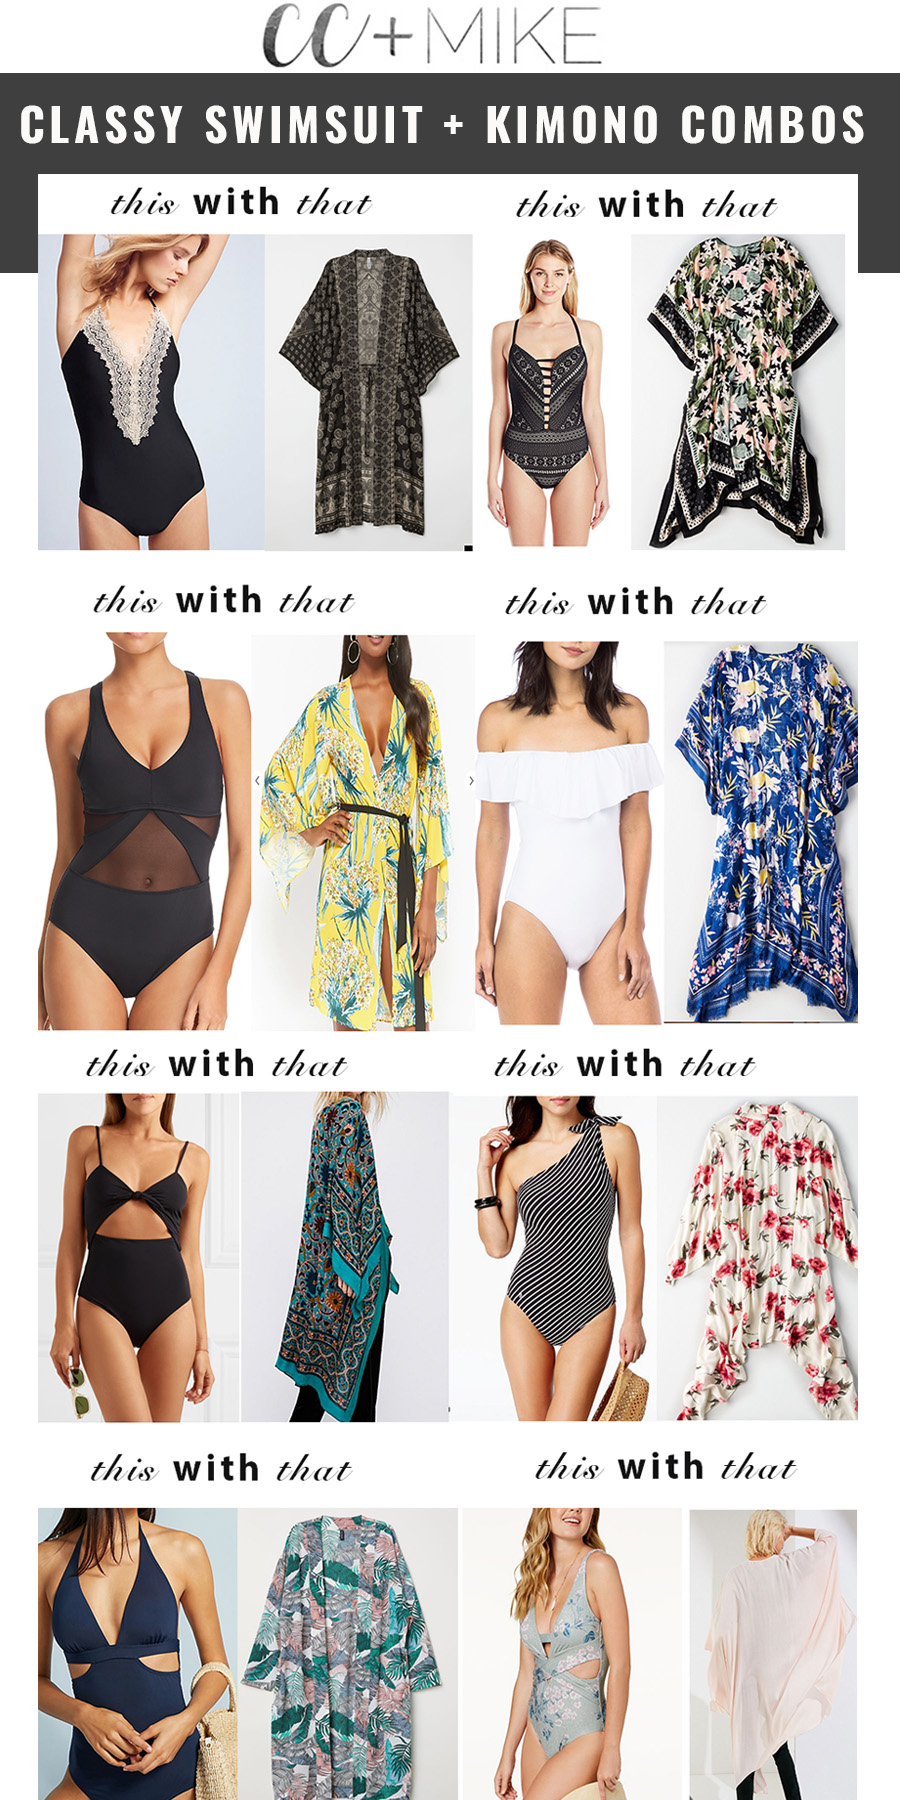 How to Combine Classy One Piece Swimsuits with Kimonos best one piece swimsuits for moms black mesh one piece swimsuits black crochet swimsuits flattering one piece swimsuits kimonos with swimsuits sexy one pieces swimsuits